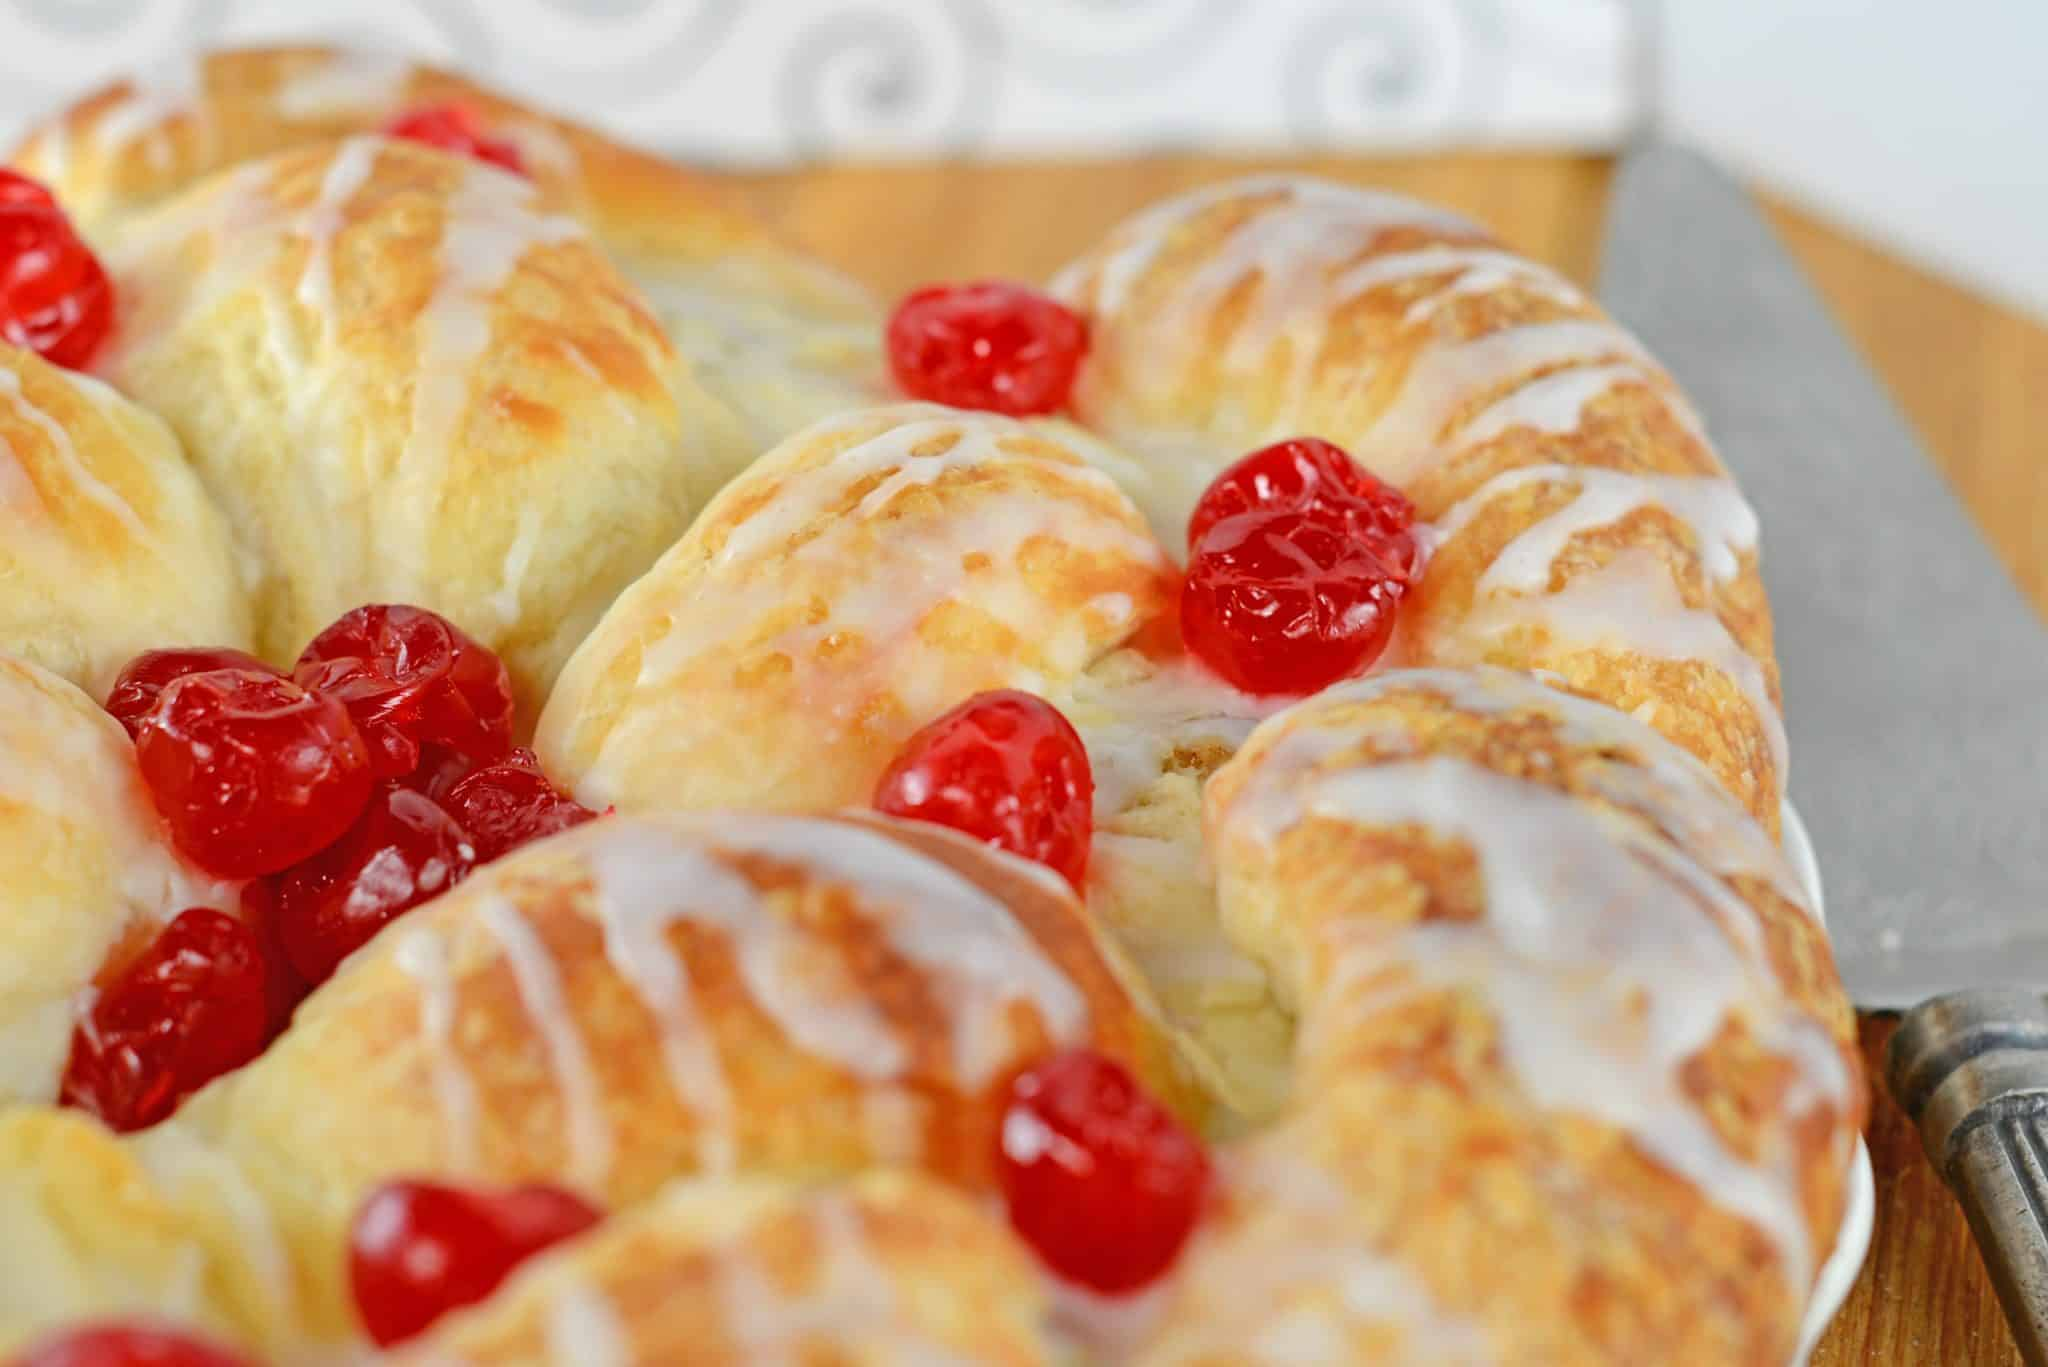 Danish Pastry Wreath is a buttery, flakey pastry stuffed with almond filling and gently glazed with a powdered sugar frosting and candied cherries.